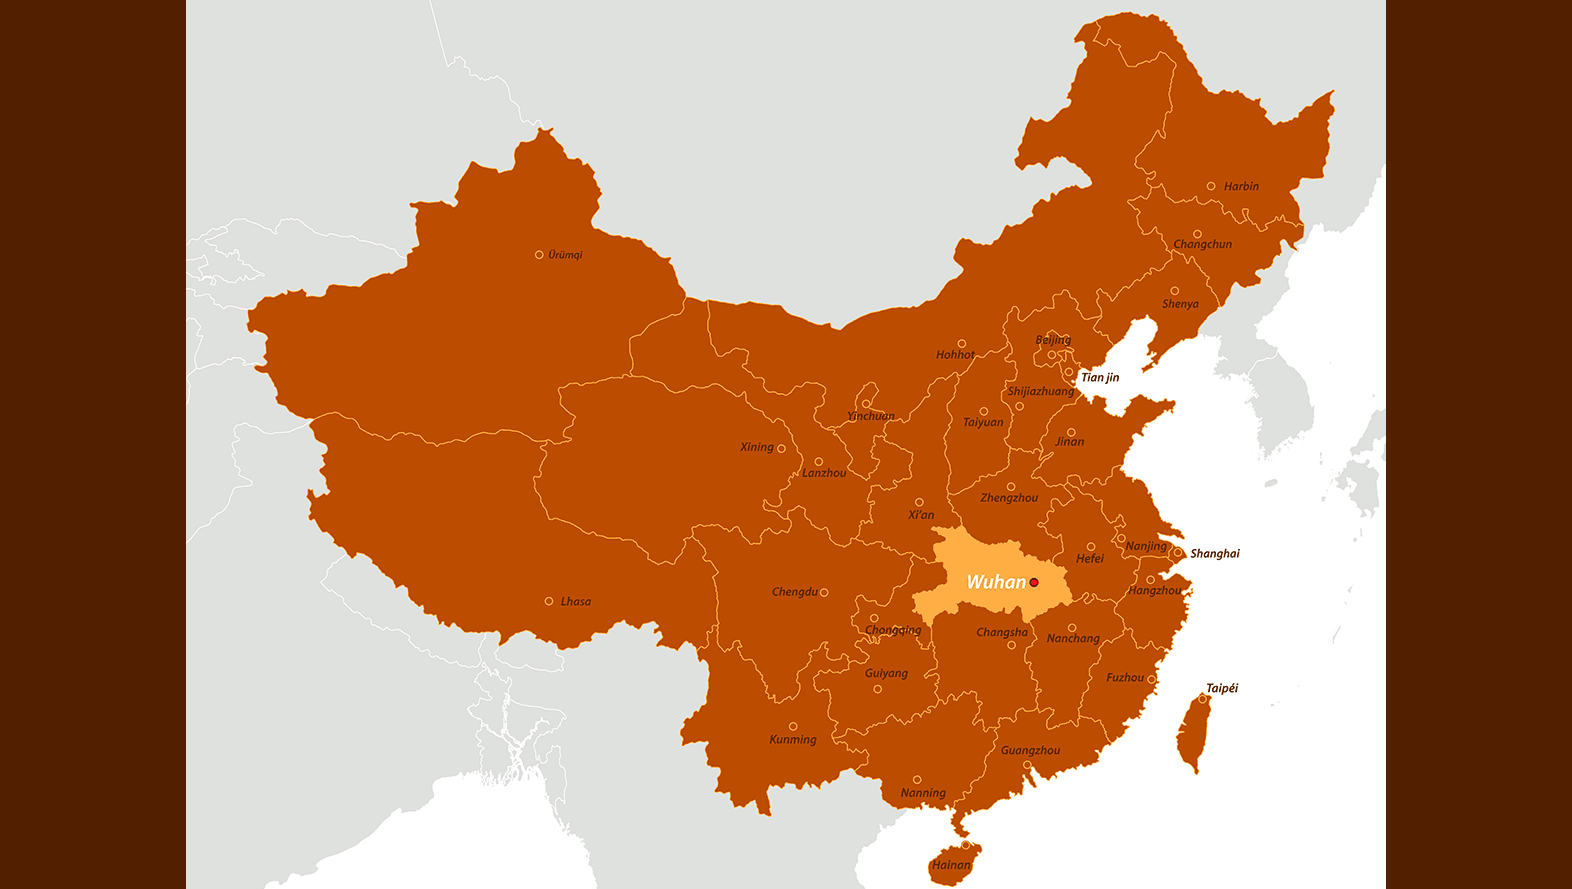 A map of china with Wuhan Province highlighted